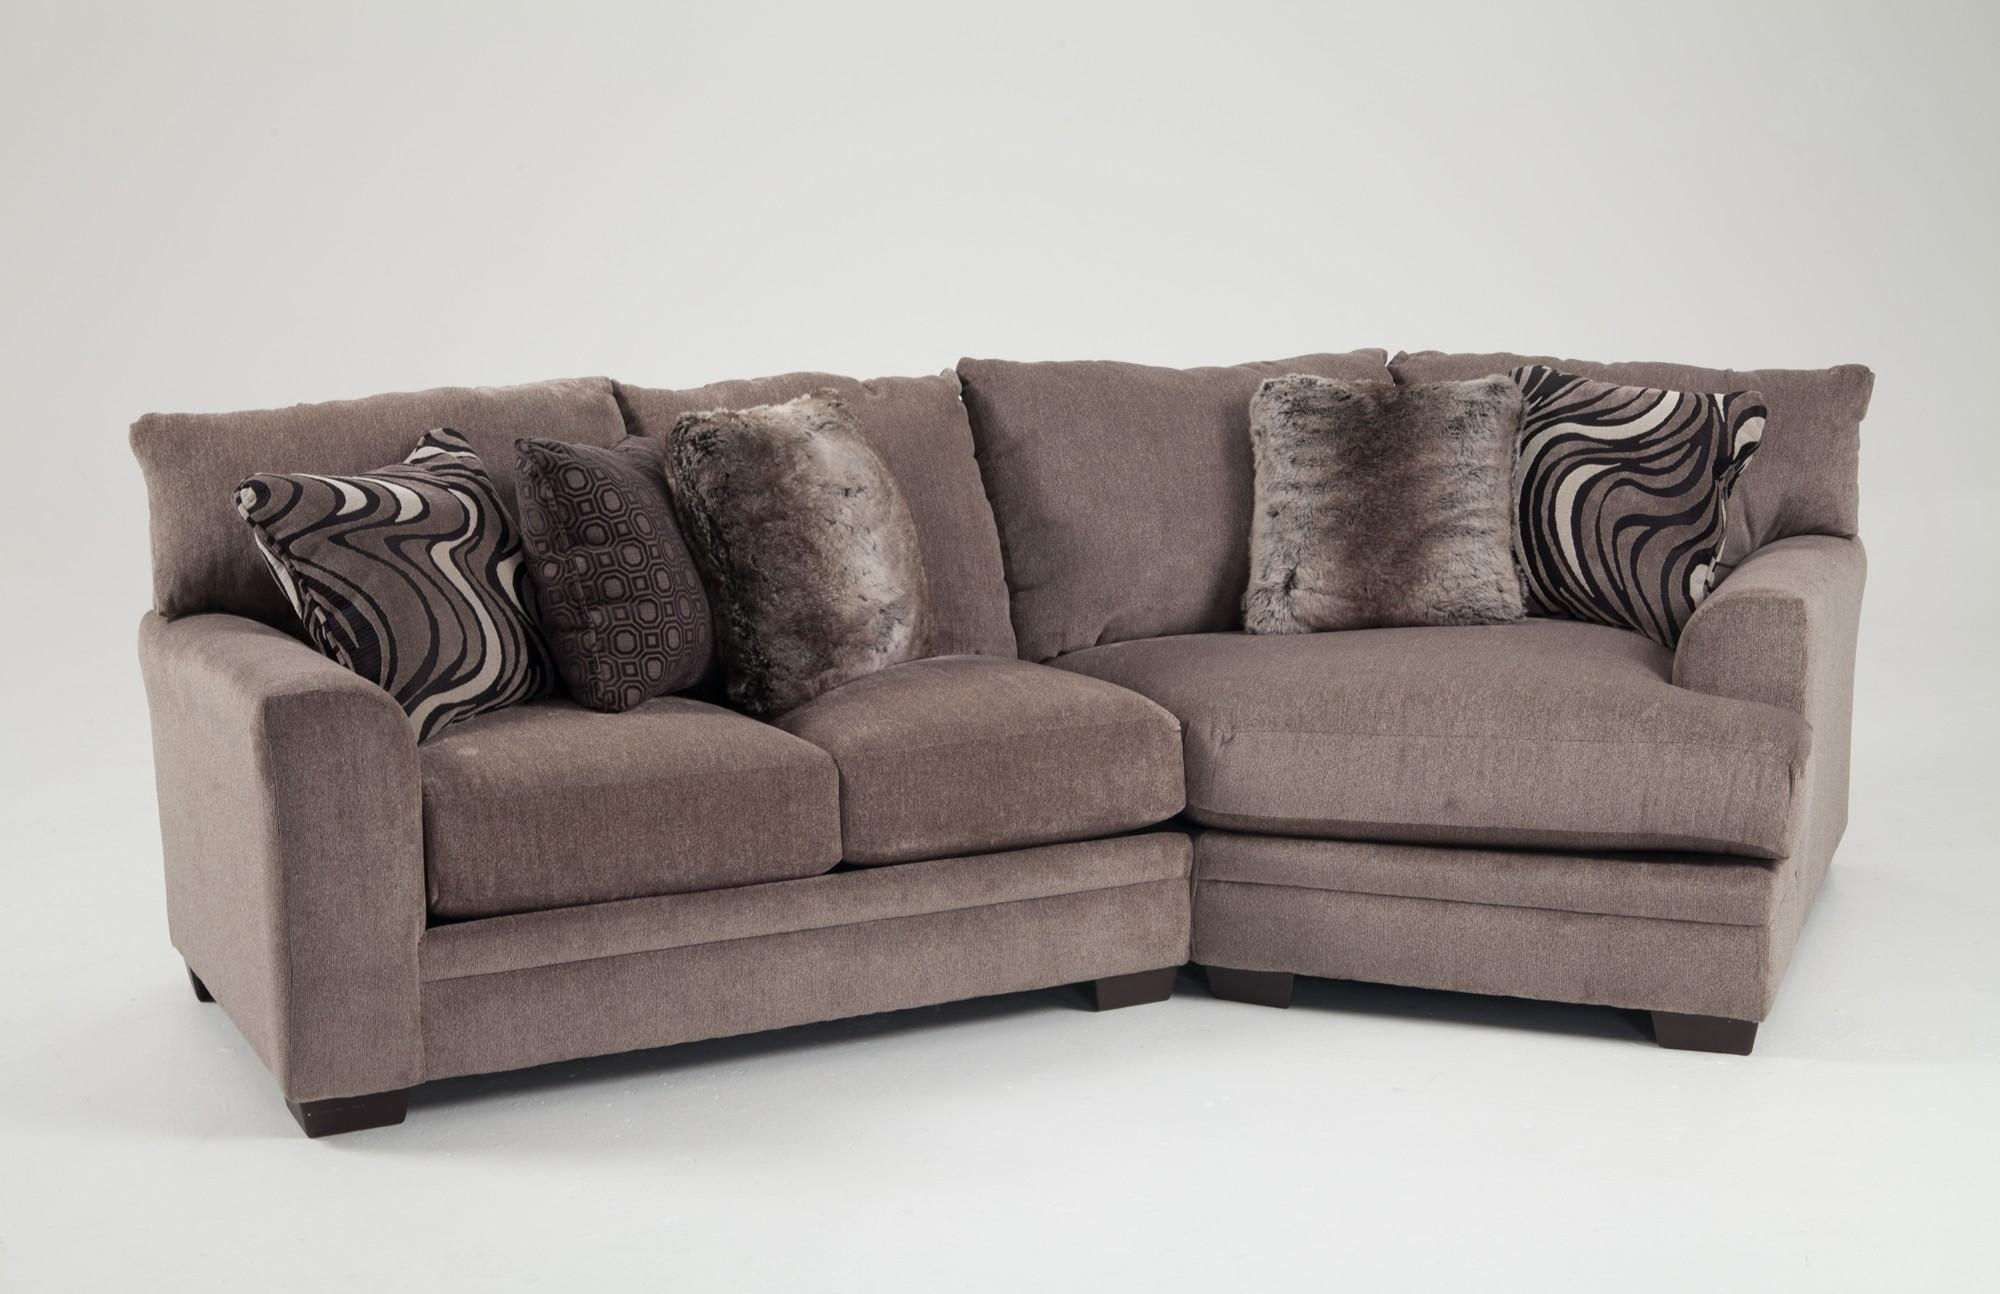 Luxe 2 Piece Sectional With Cuddler | Bob's Discount Furniture Pertaining To Sectional Cuddler (View 17 of 20)